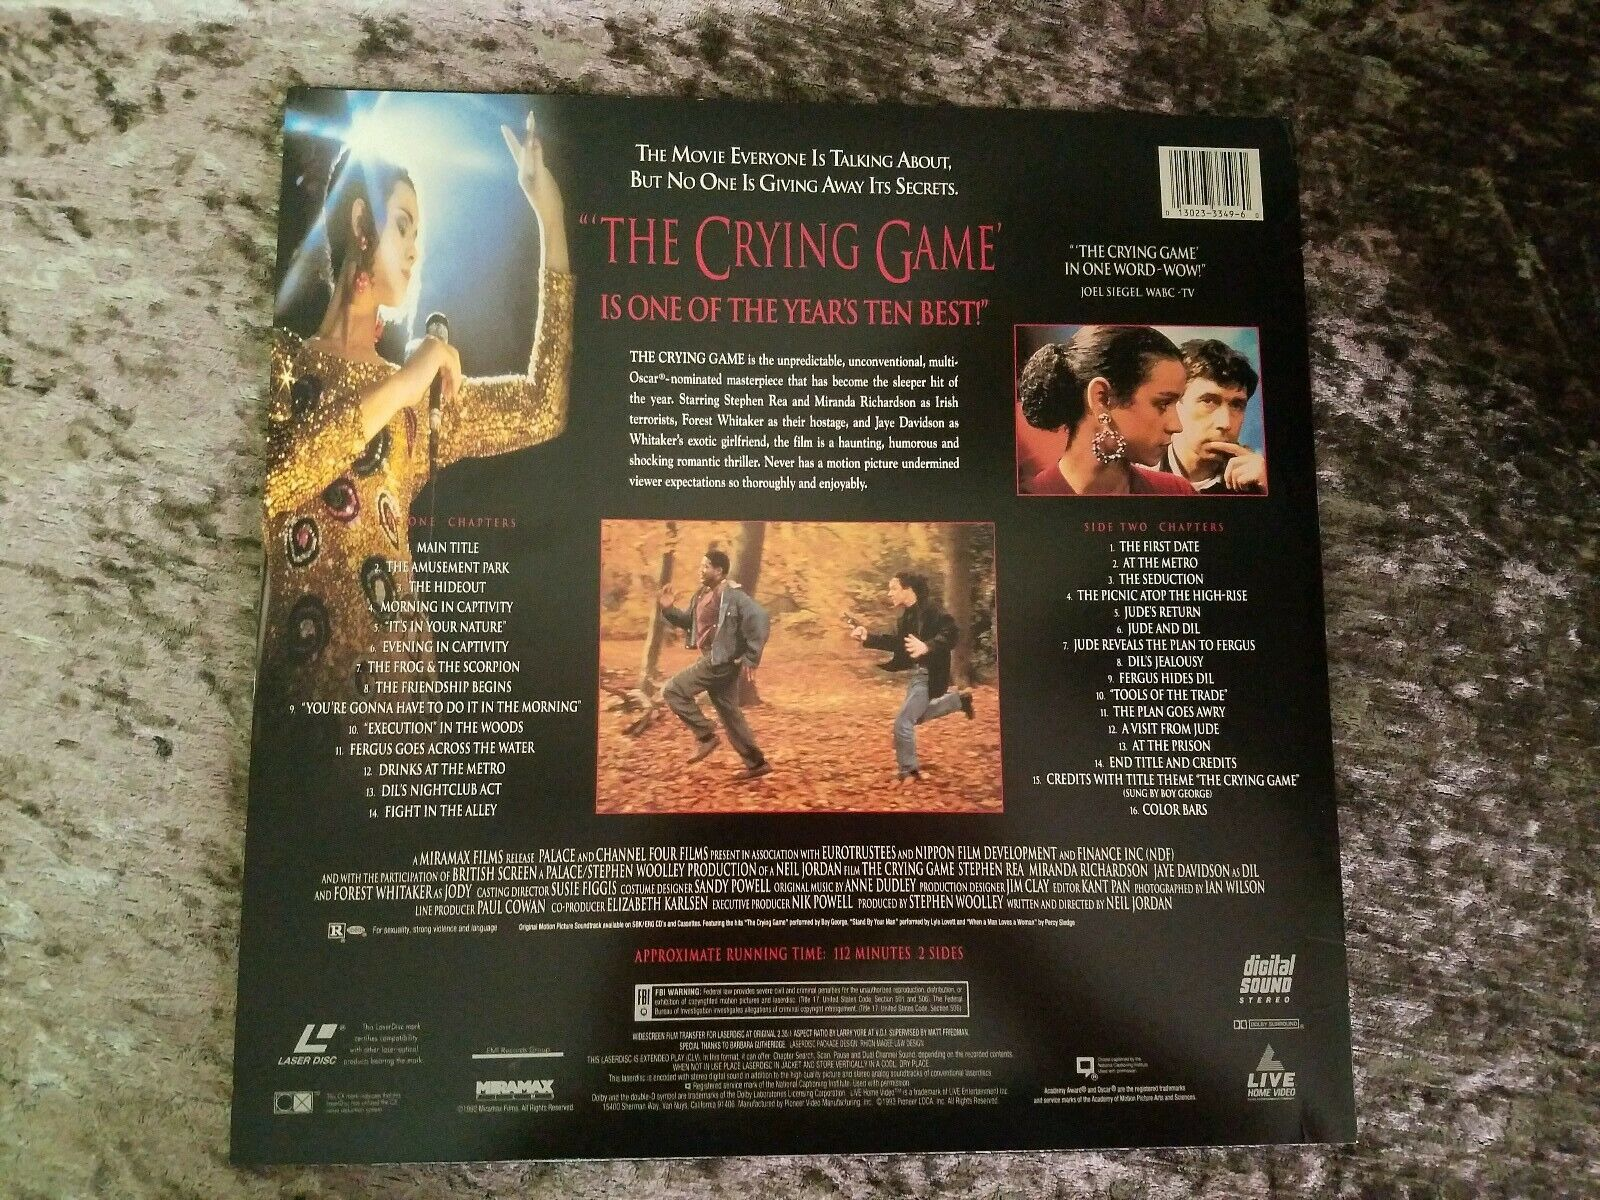 The Crying Game Laserdisc RARE Laserdiscs Widescreen Editions Laser Disc